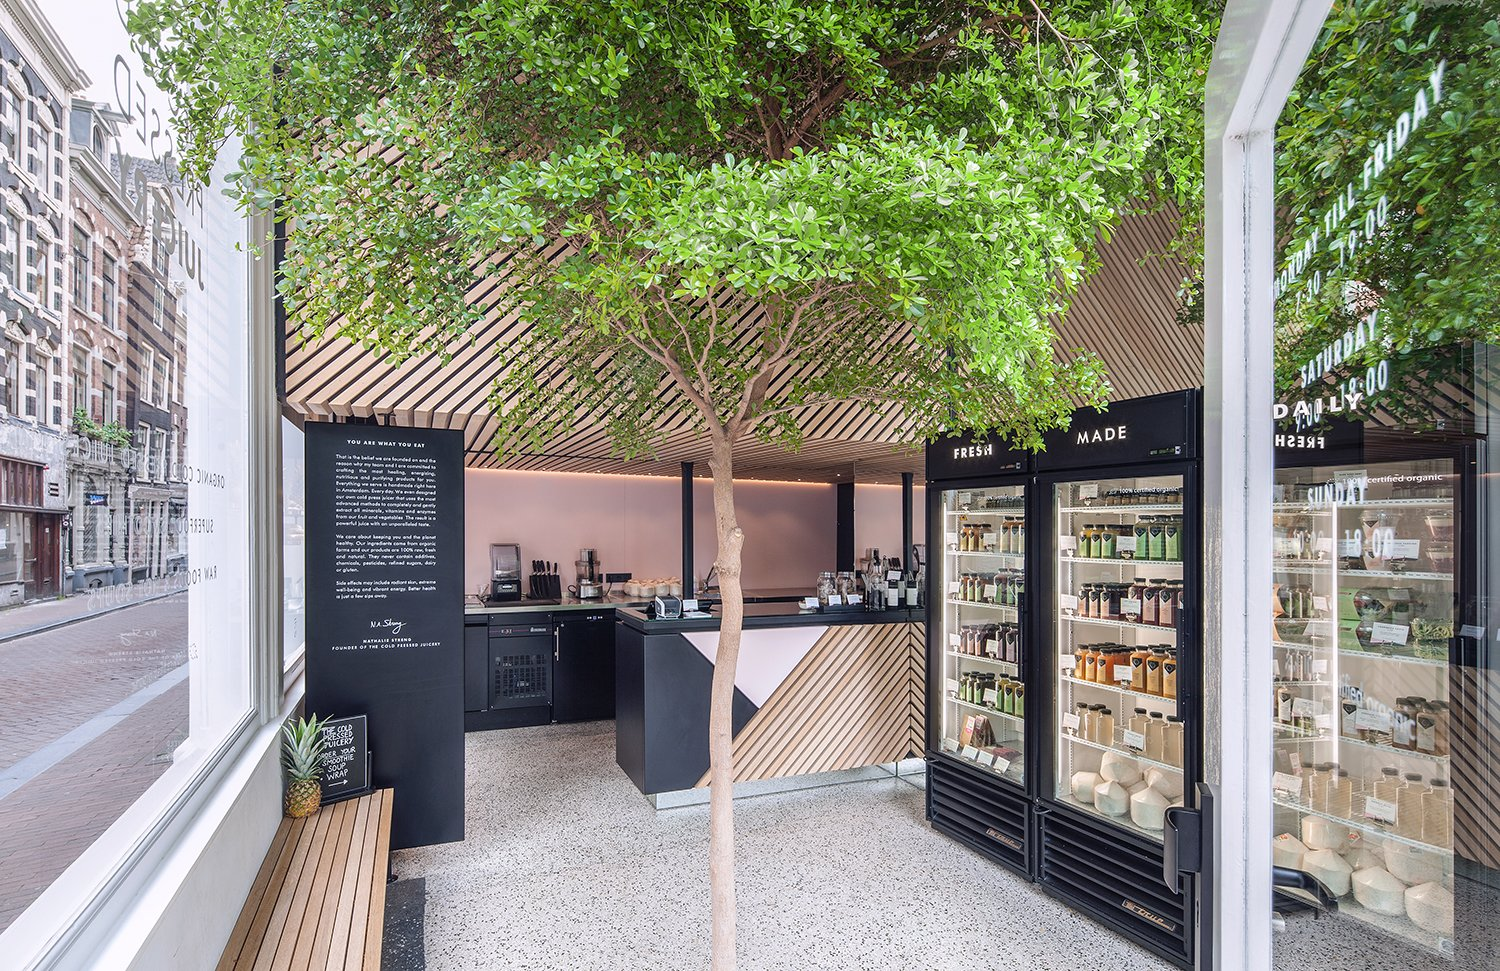 Build in Amsterdam is responsible for the shop's graphic identity. Photo by Wouter van der Sar.  Photo 7 of 7 in A Tree Grows in Amsterdam